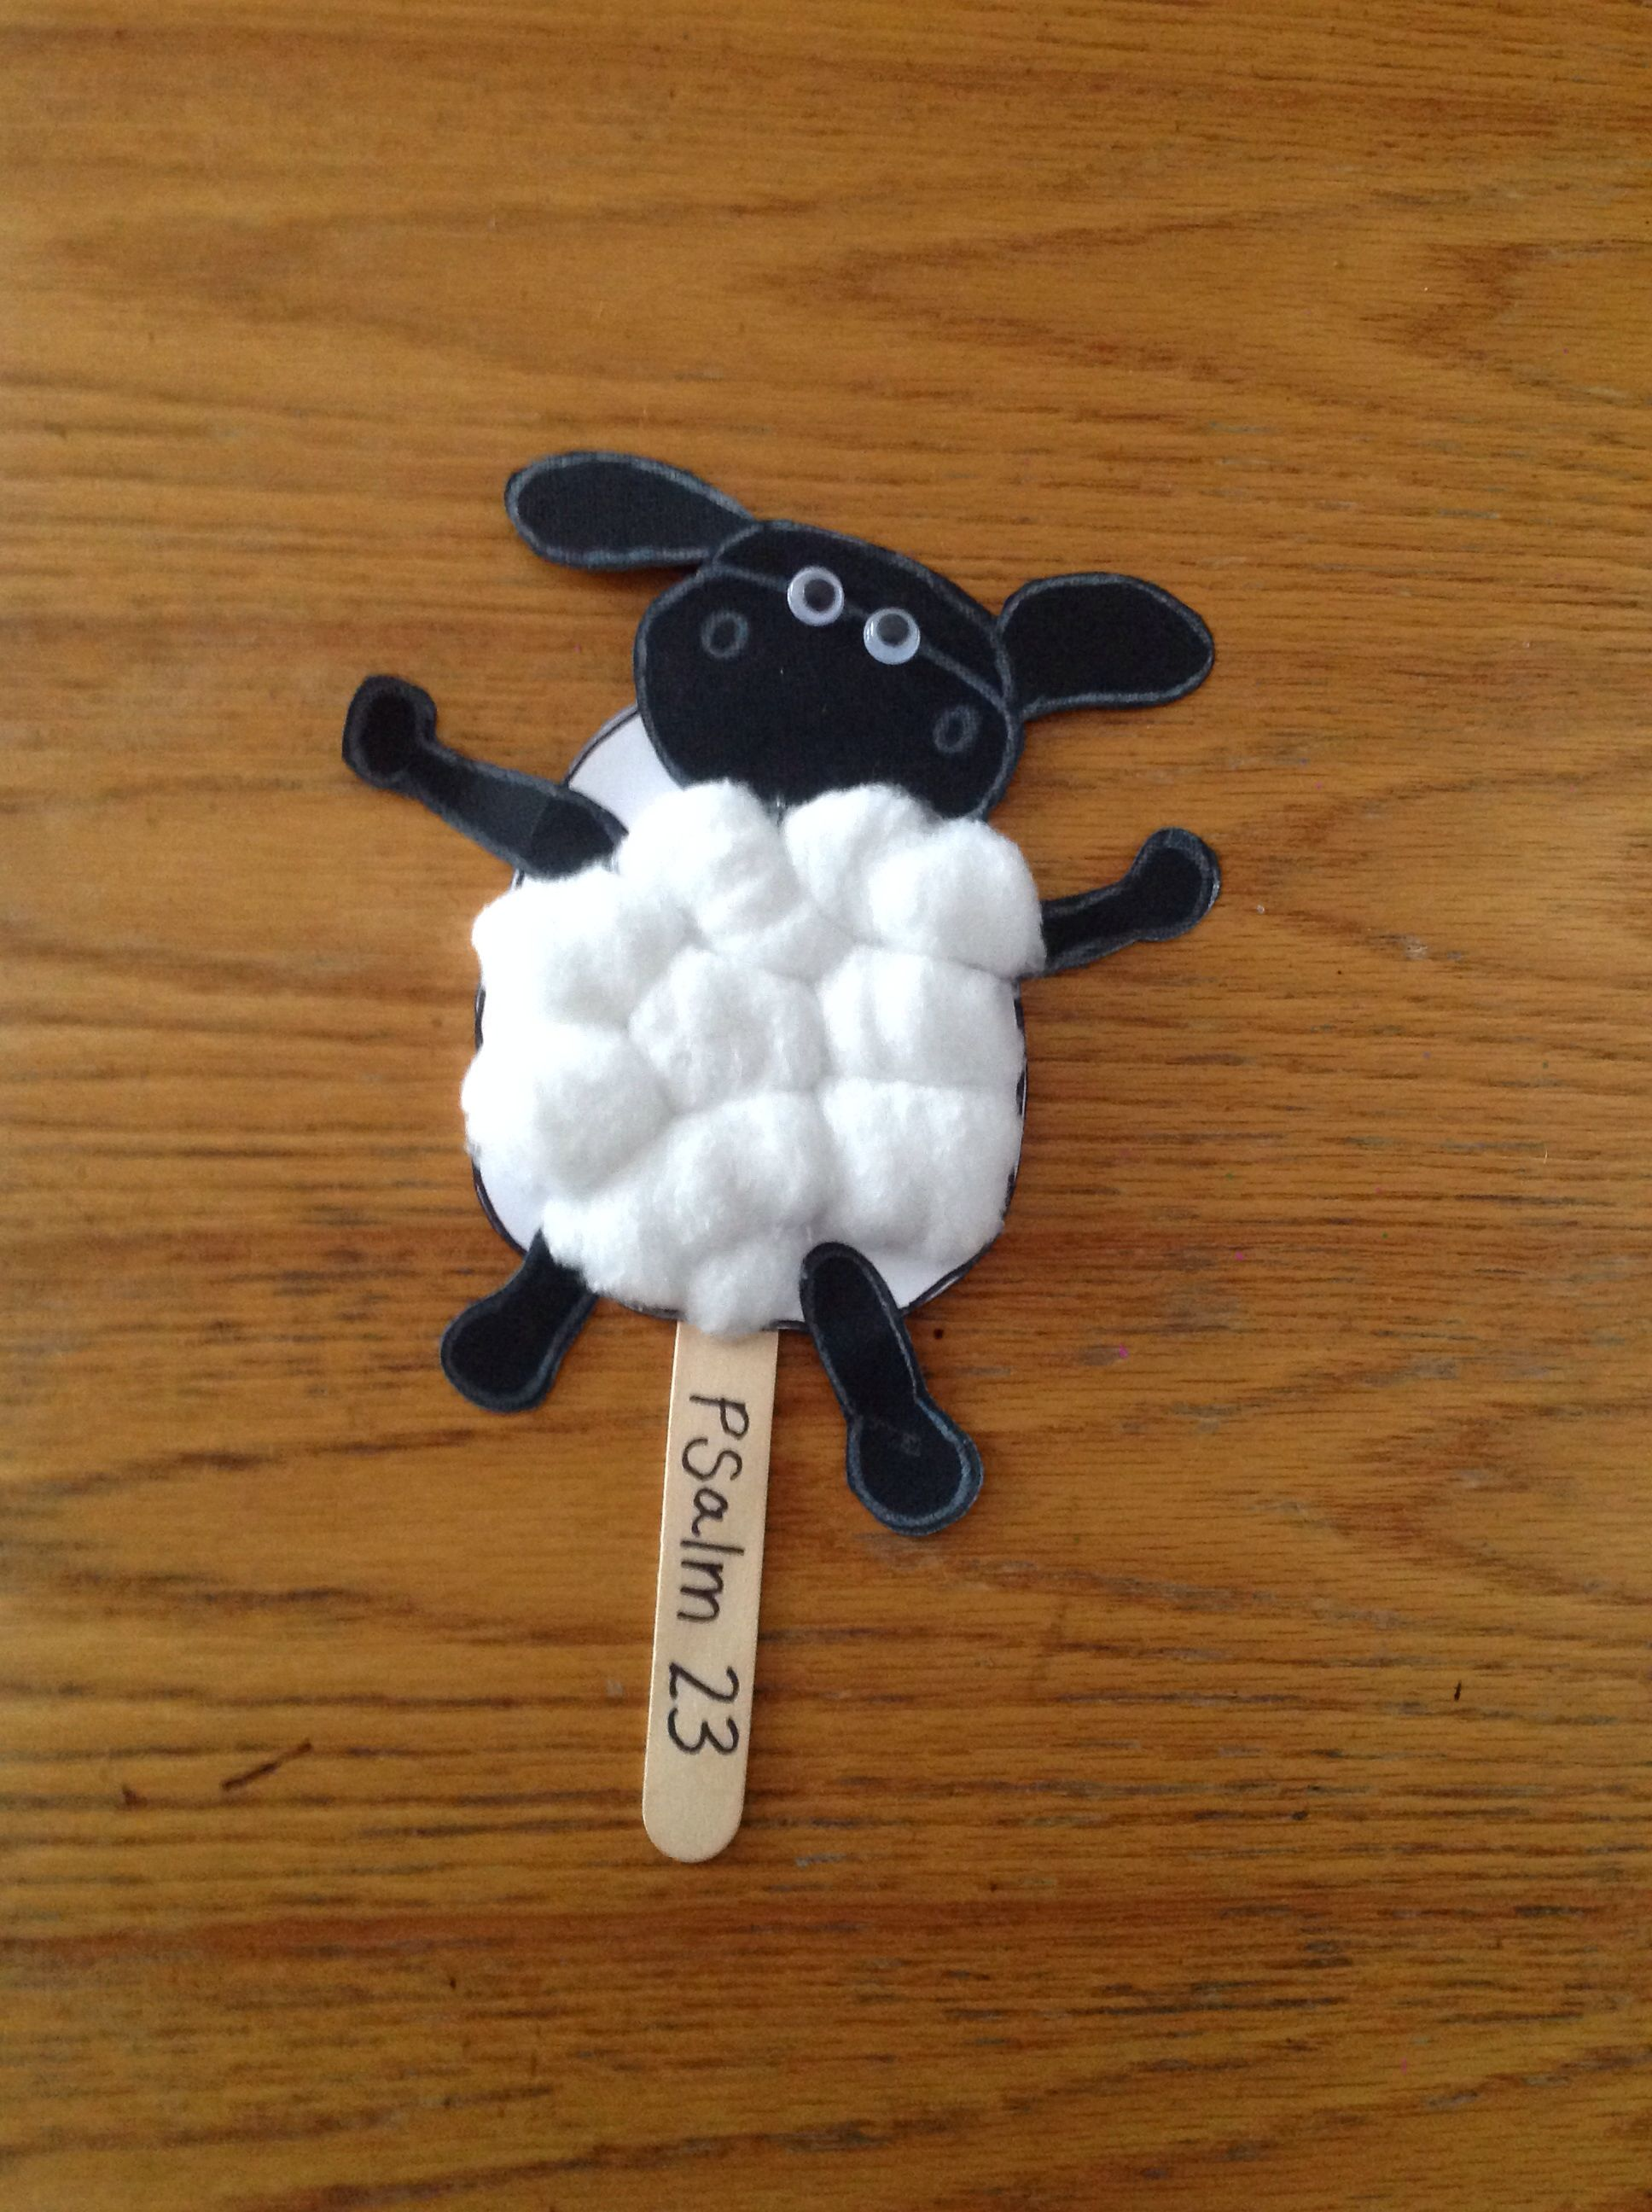 White Card Glue Cotton Woll Paddle Pop Stick Eyes Black Face And Legs Template